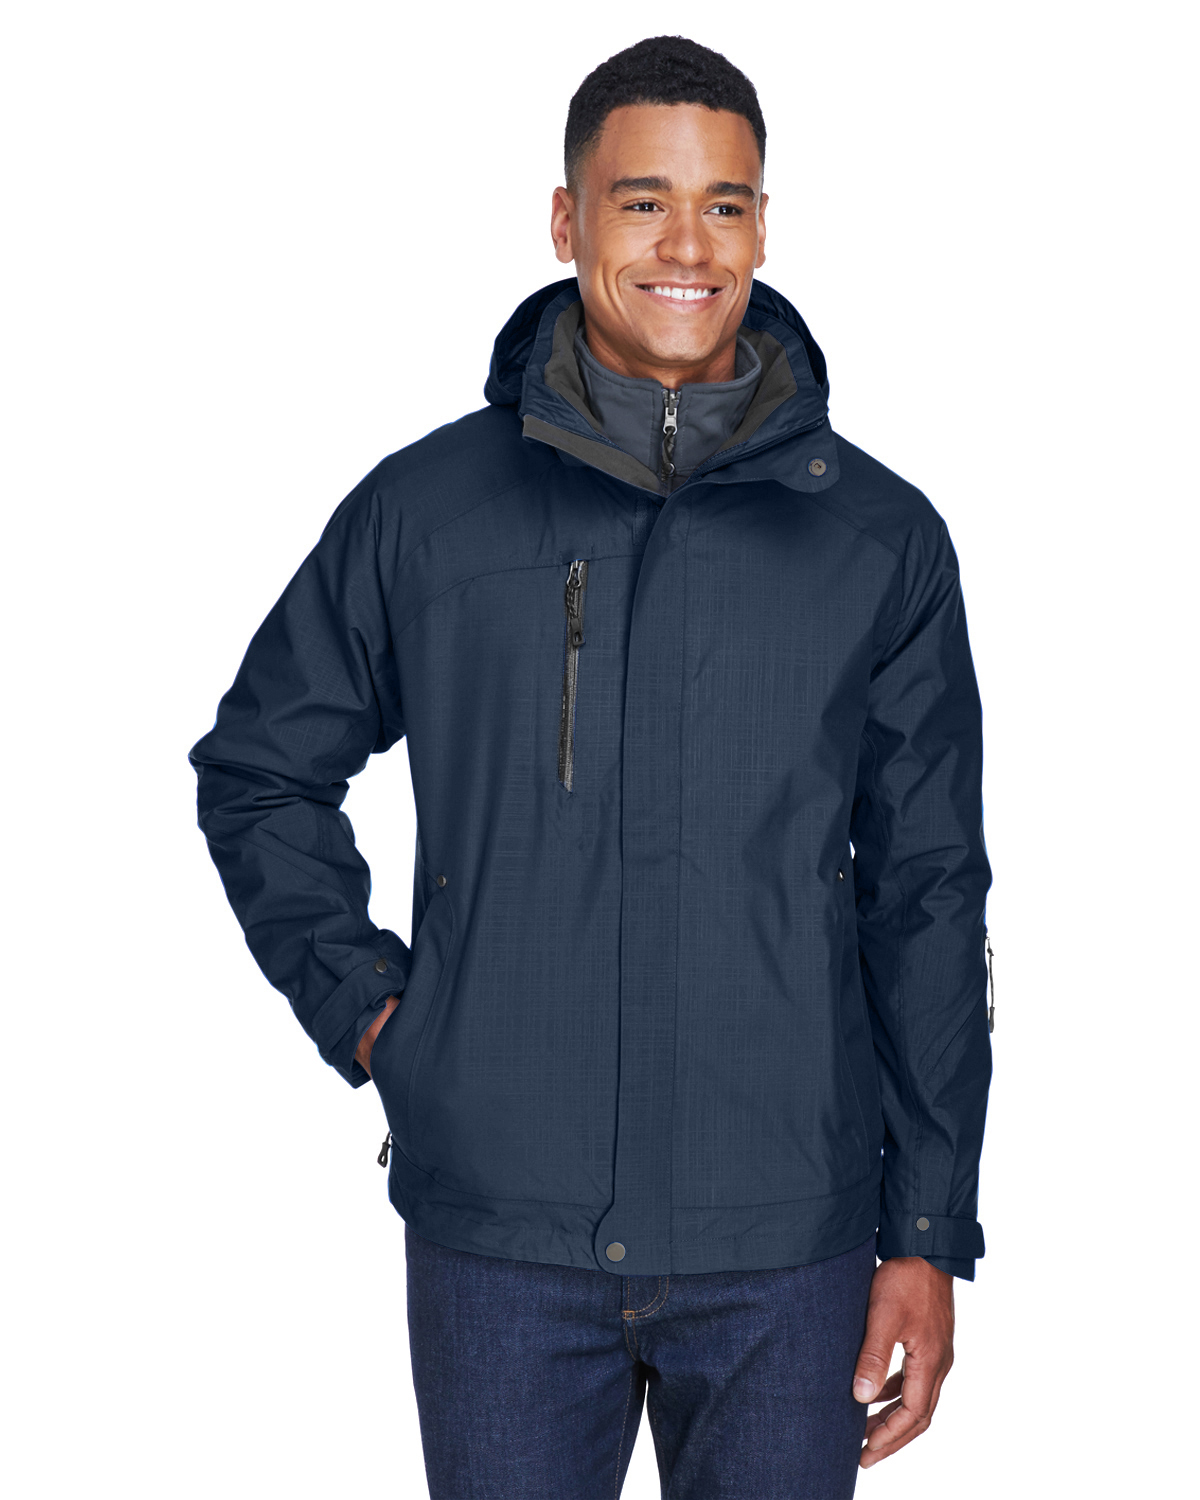 Ash City Men's Caprice 3-in-1 Jacket with Soft Shell Liner